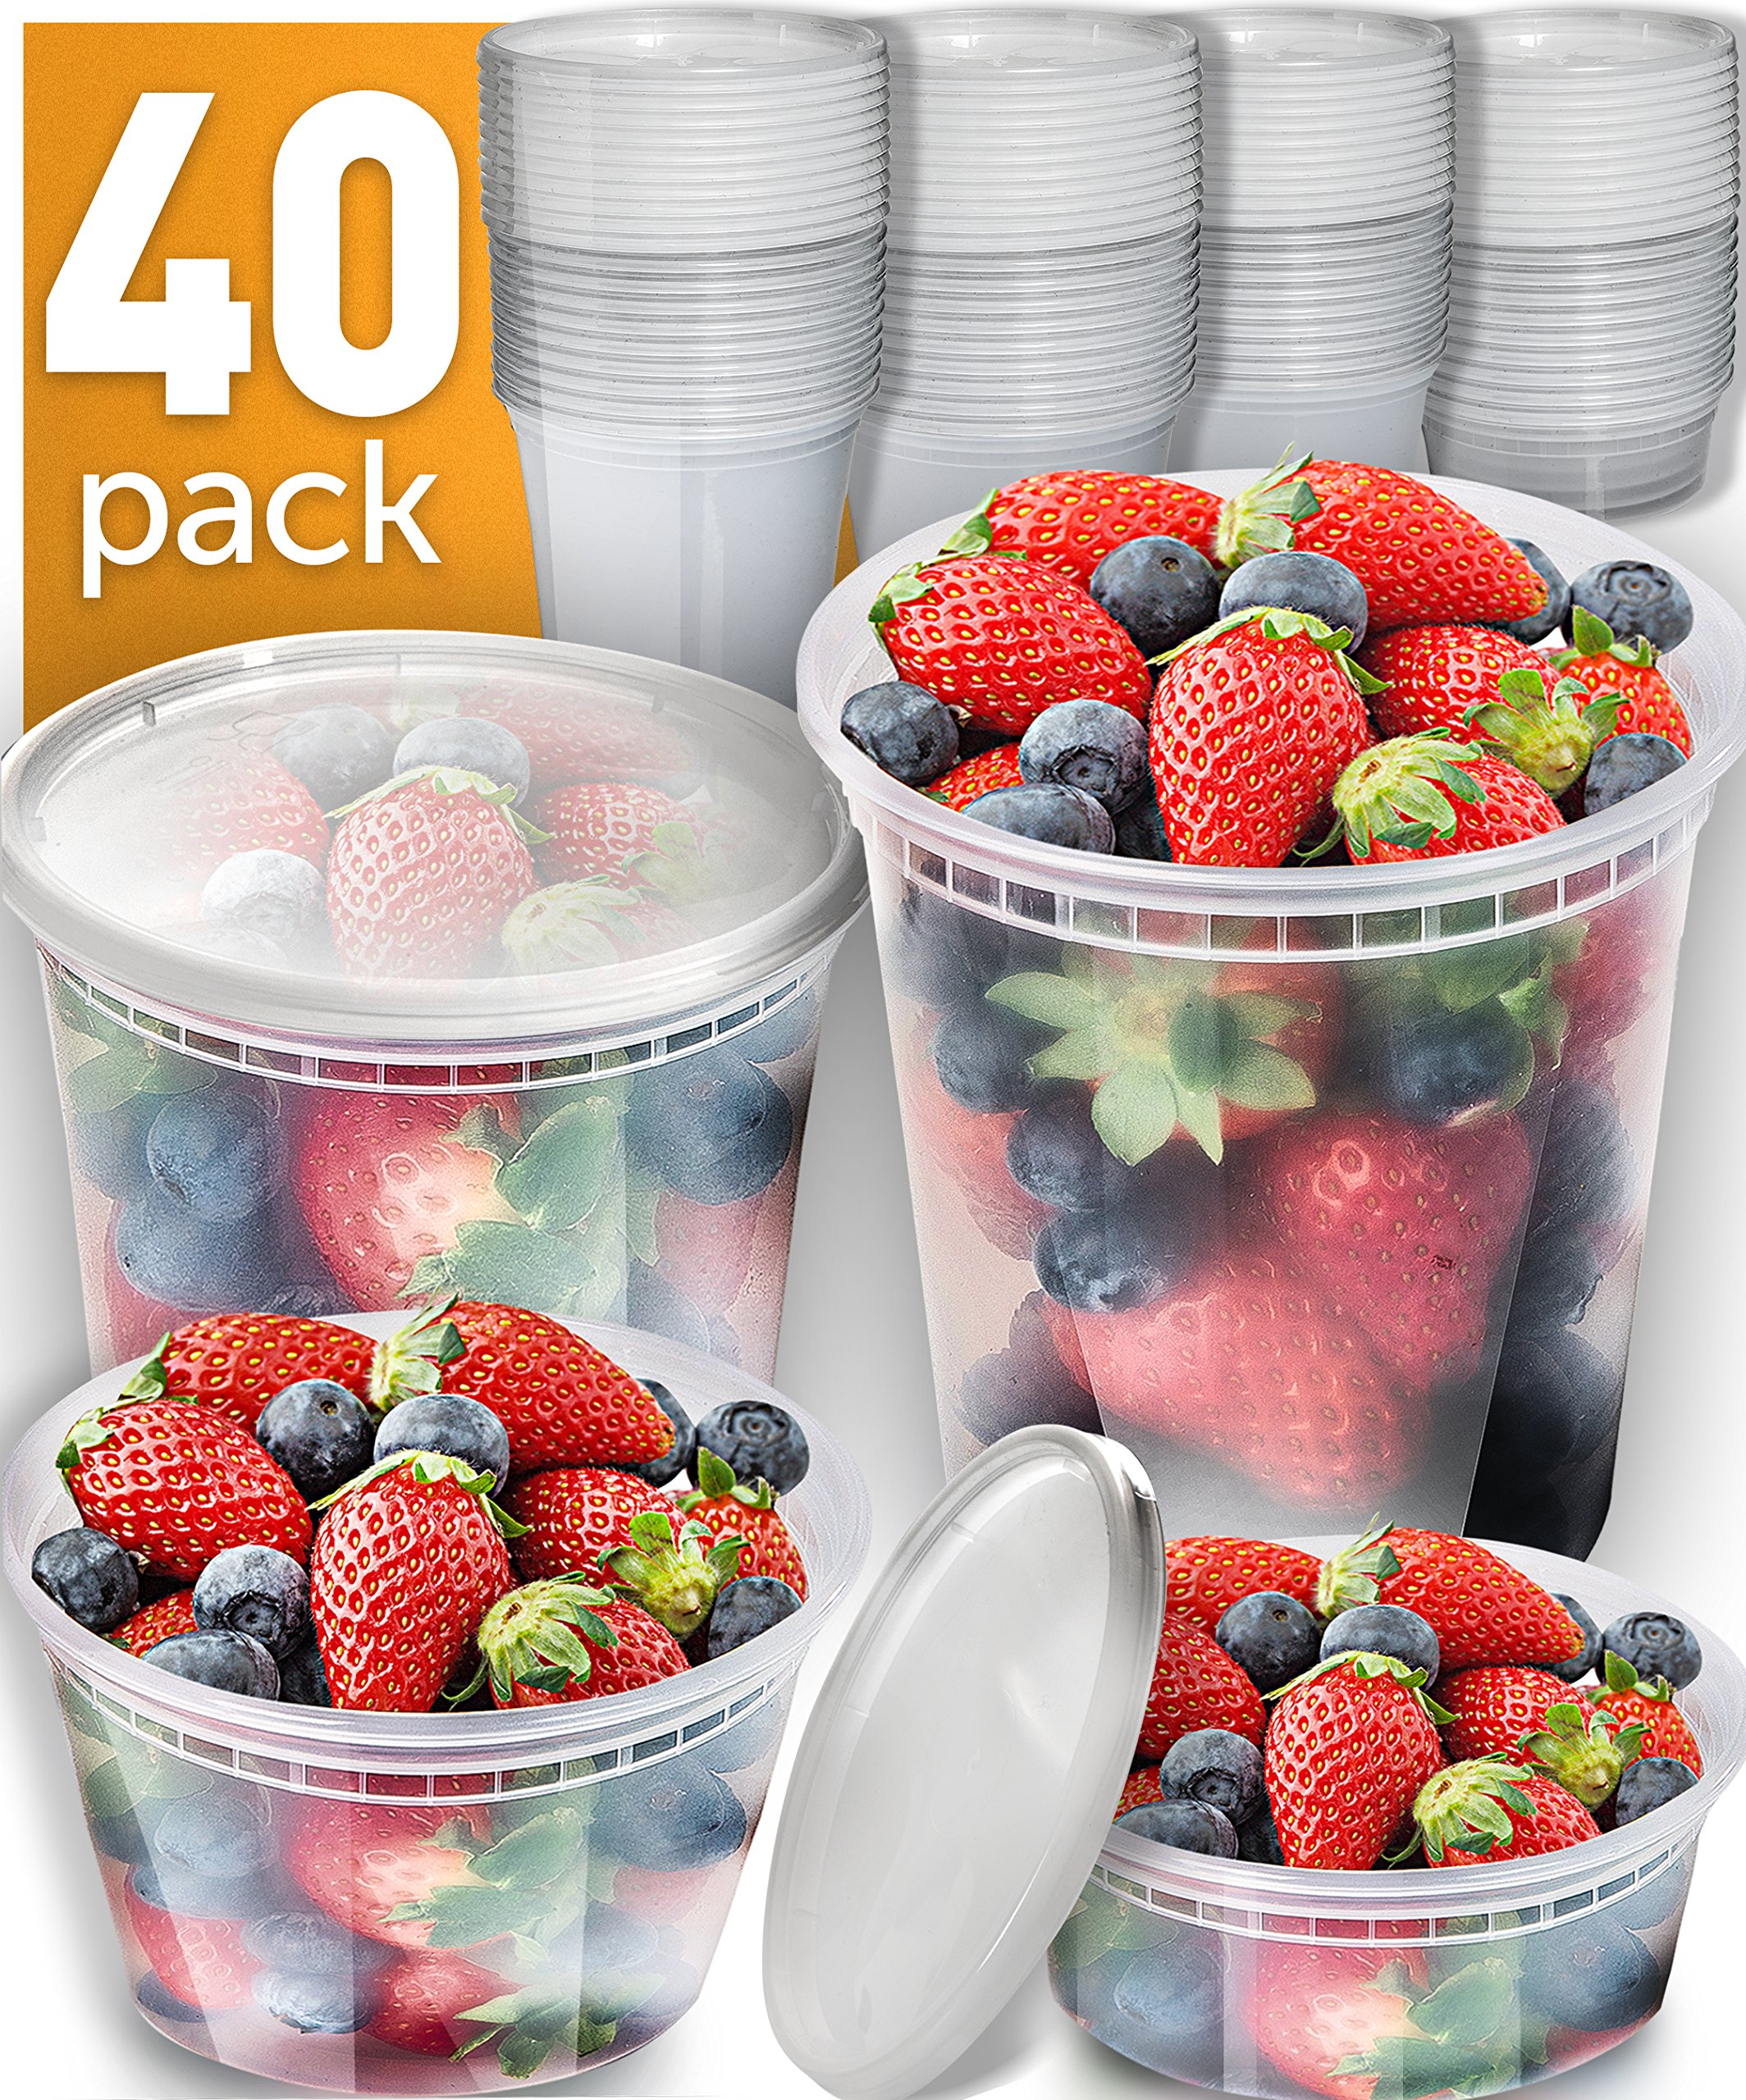 [40 Pack] Plastic Containers With Lids Set - Freezer Containers Deli Containers With Lids - Meal Prep Containers for Food Storage Containers - Plastic Food Containers by Prep Naturals [Mixed Sizes]